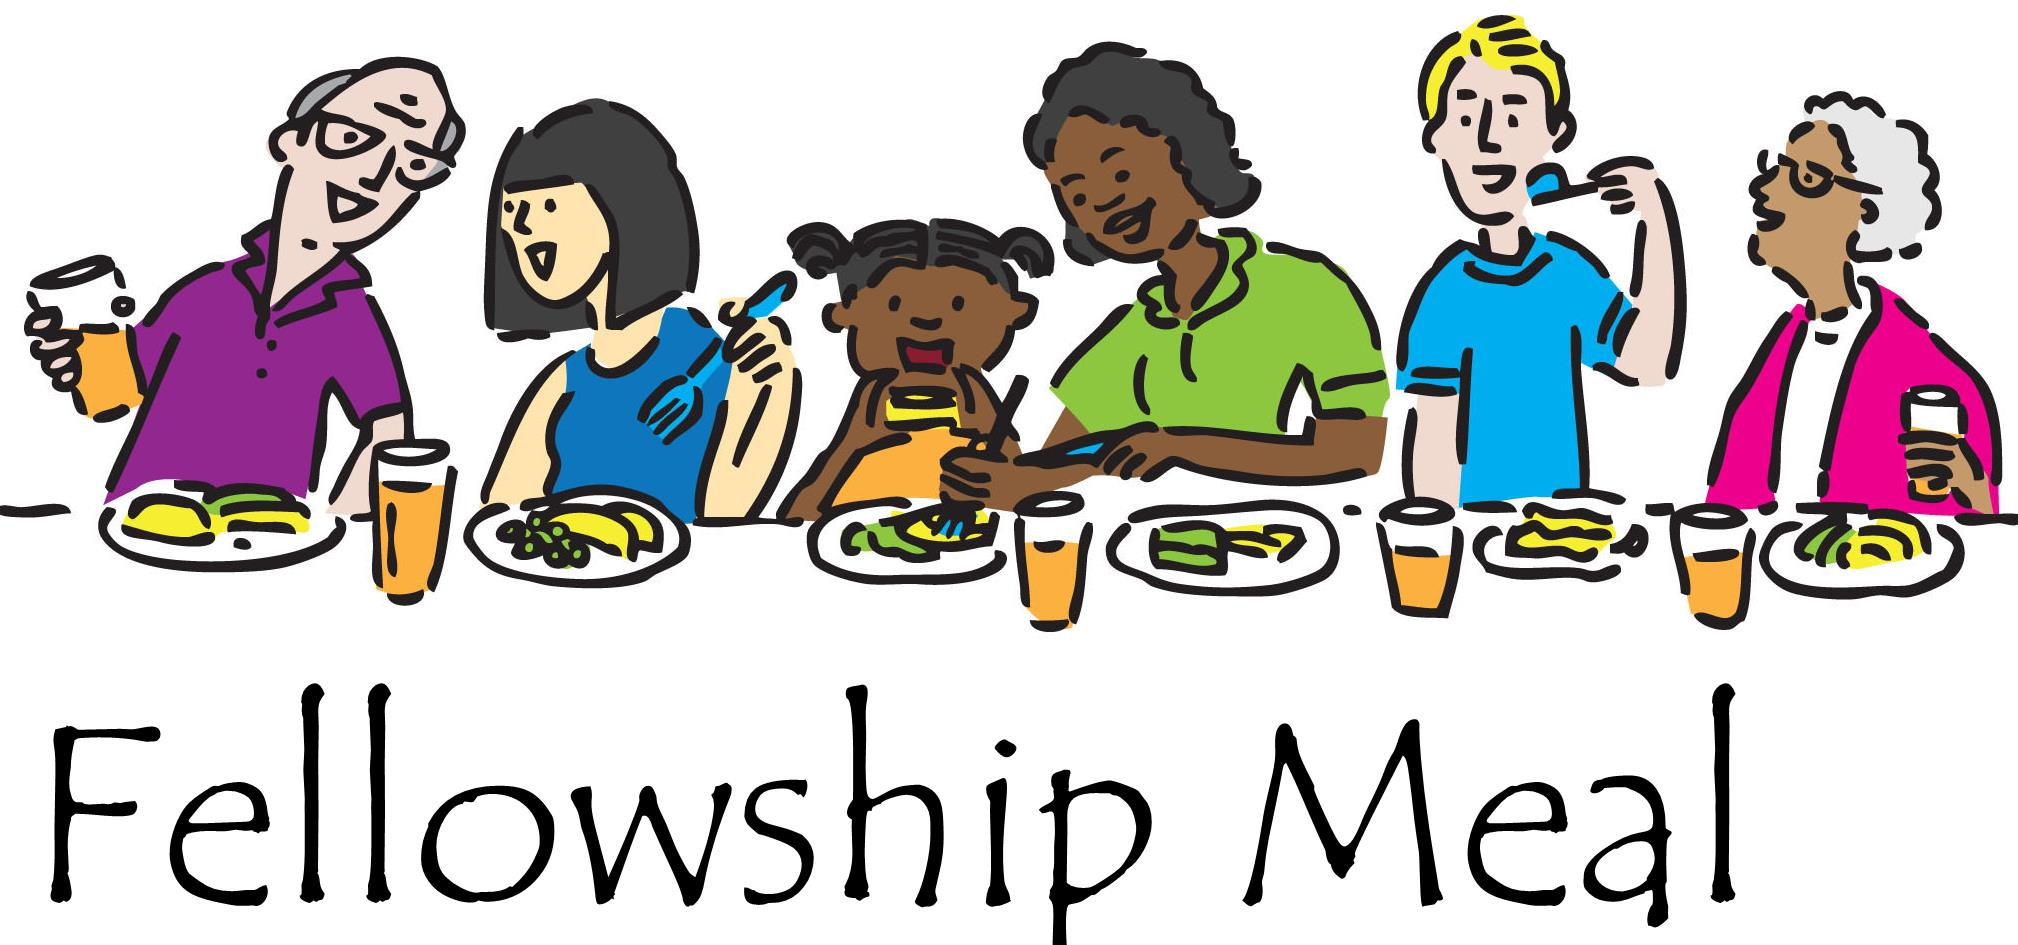 Diner clipart group dining. Free church fellowship cliparts